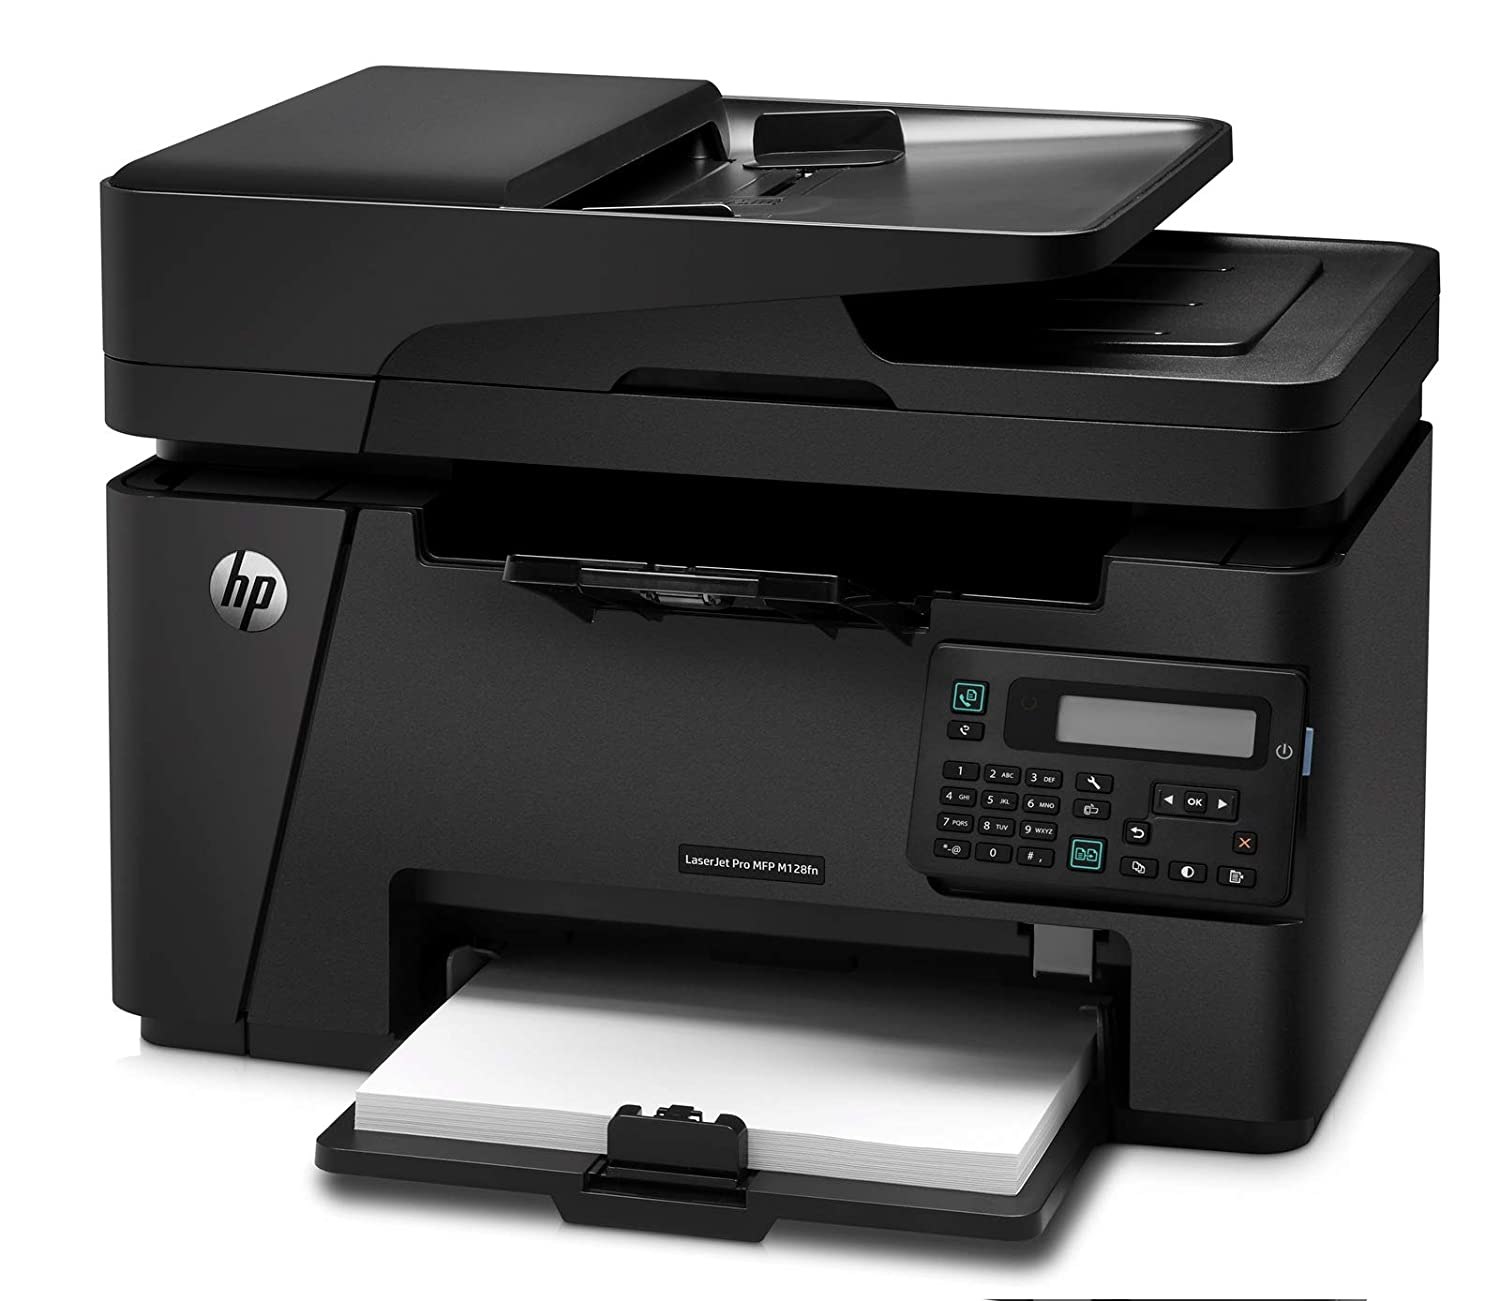 Comutronics Electronics Qa Buy Hp Laserjet Pro Mfp M128fn Printer Online At Low Prices In India Reviews Ratings